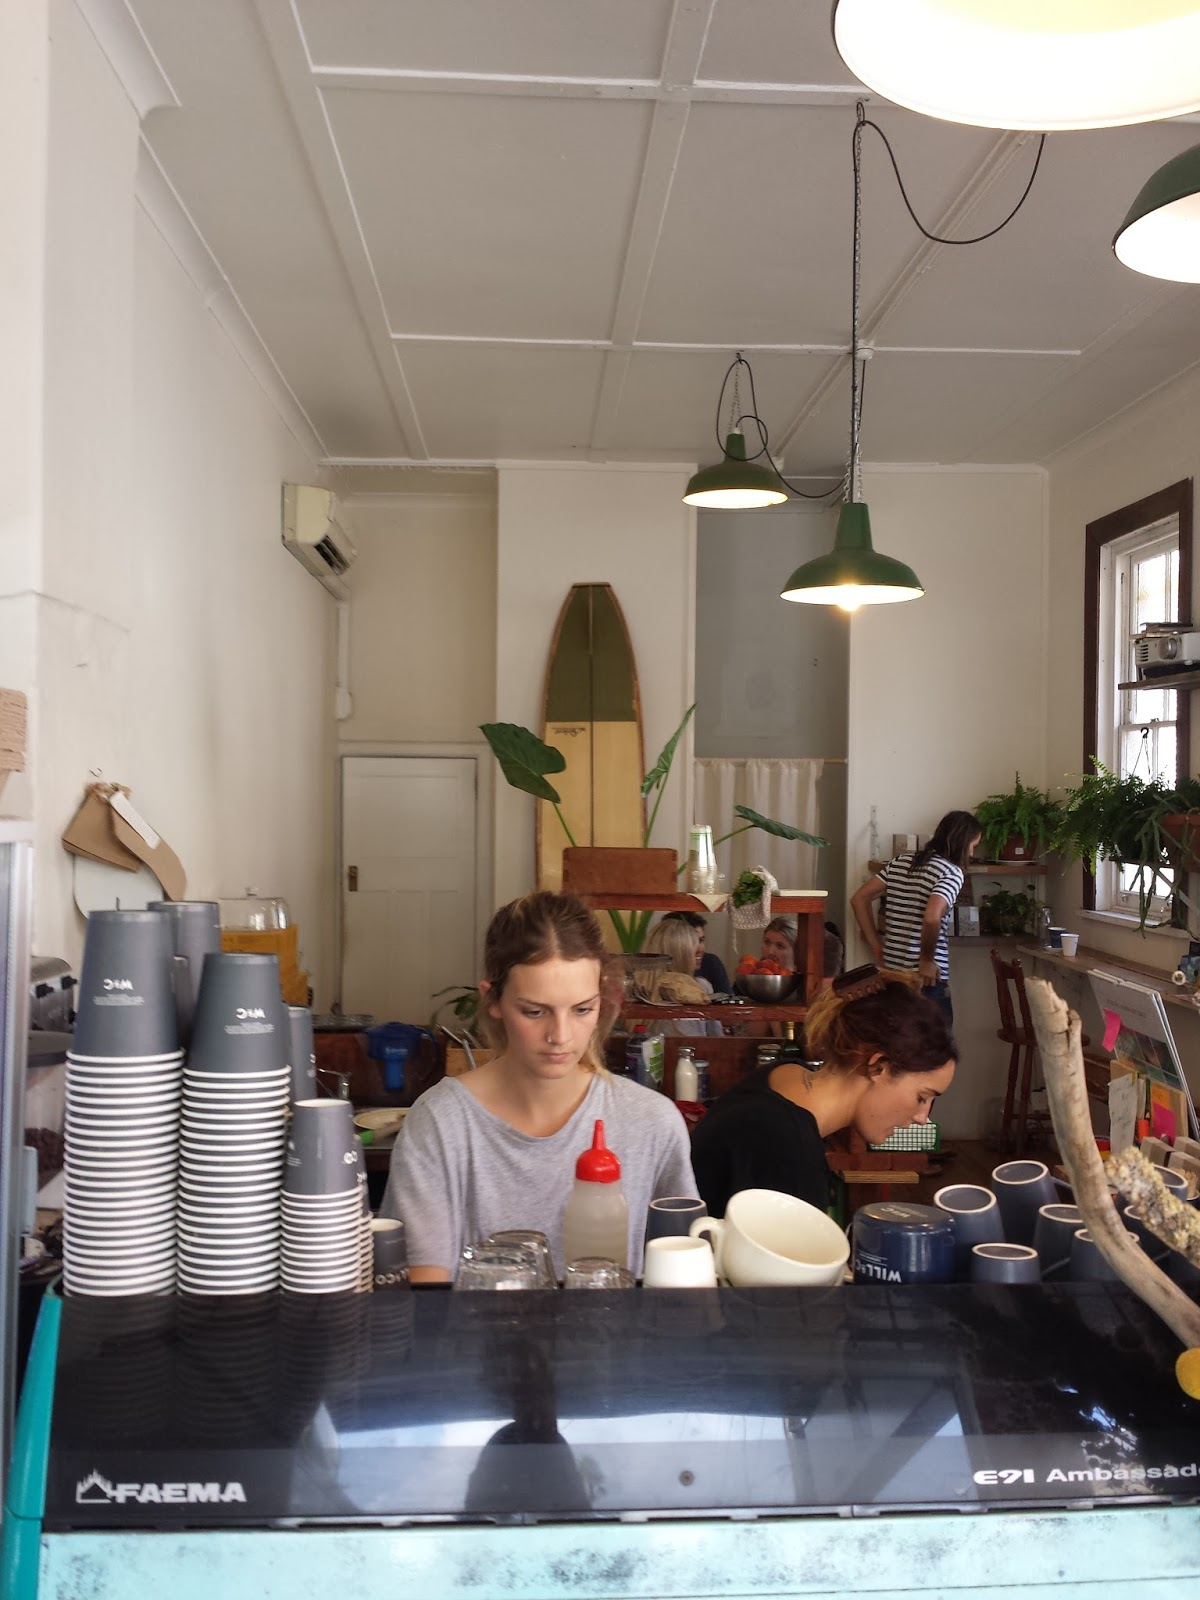 26-03-2016-australia-siebert-surfboards-06